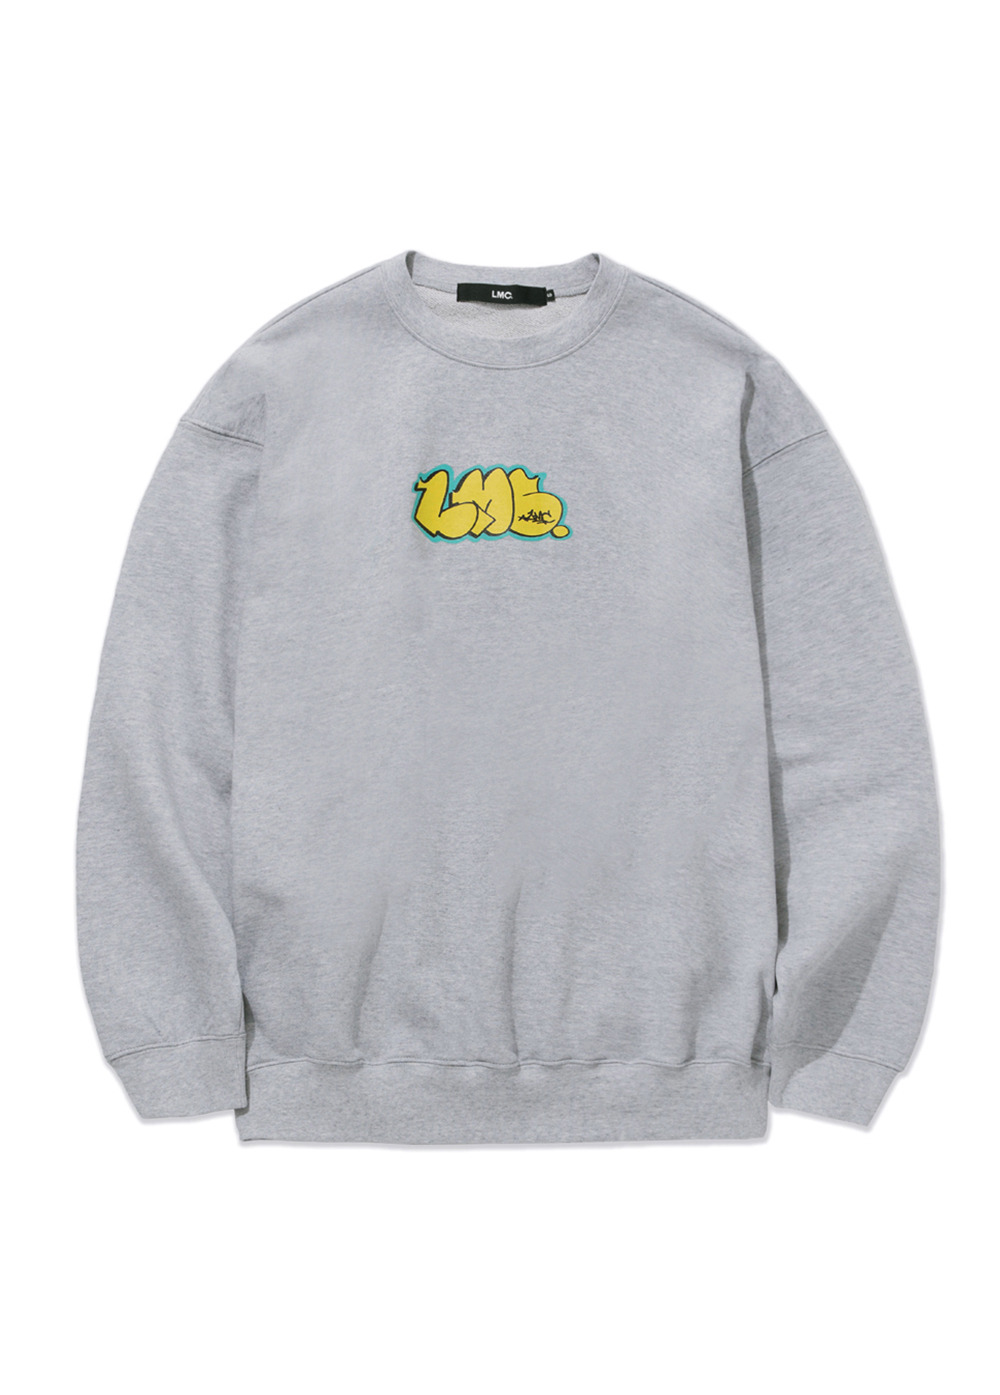 LMC GRAFFITI OG OVERSIZED SWEATSHIRT heather gray